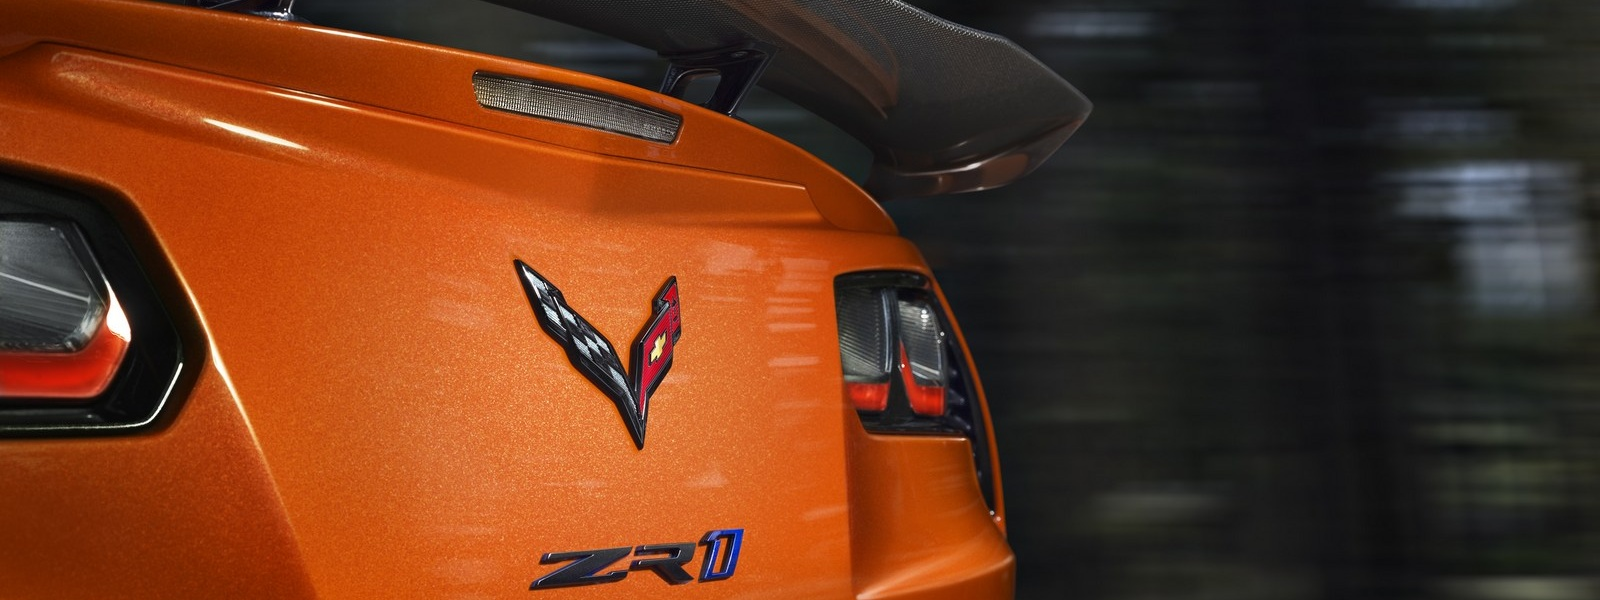 2019-Chevrolet-Corvette-ZR1-007.jpg